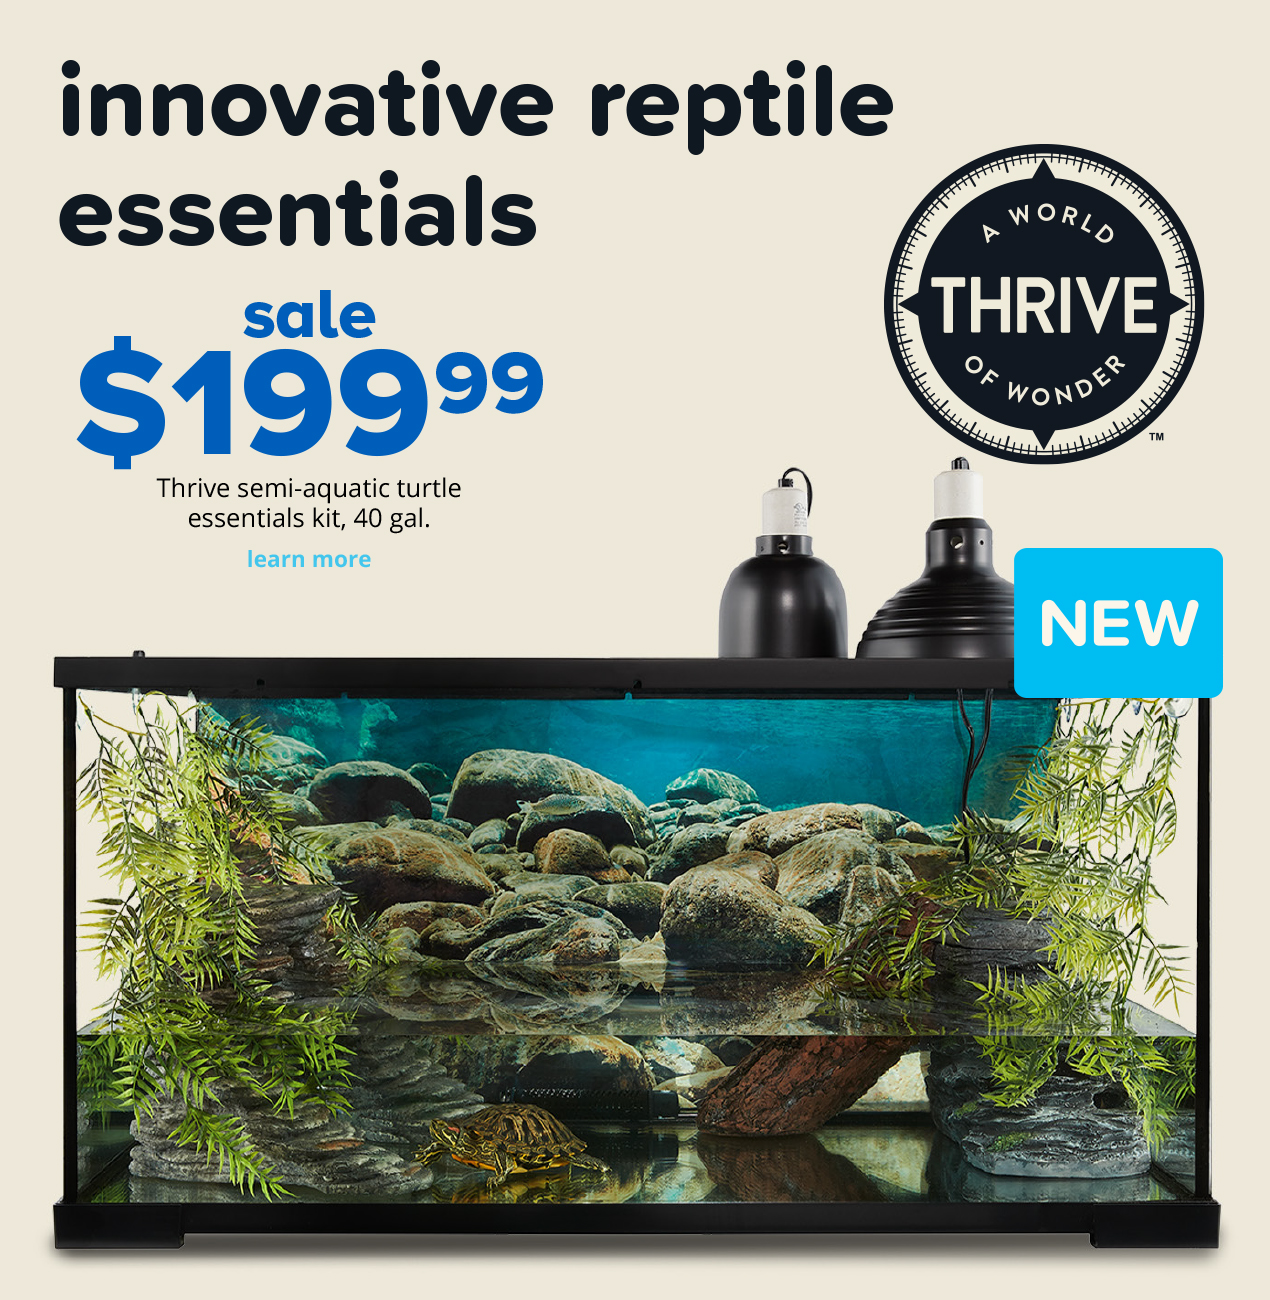 sale $199.99 Thrive semi-aquatic turtle essentials kit, 40 gal.